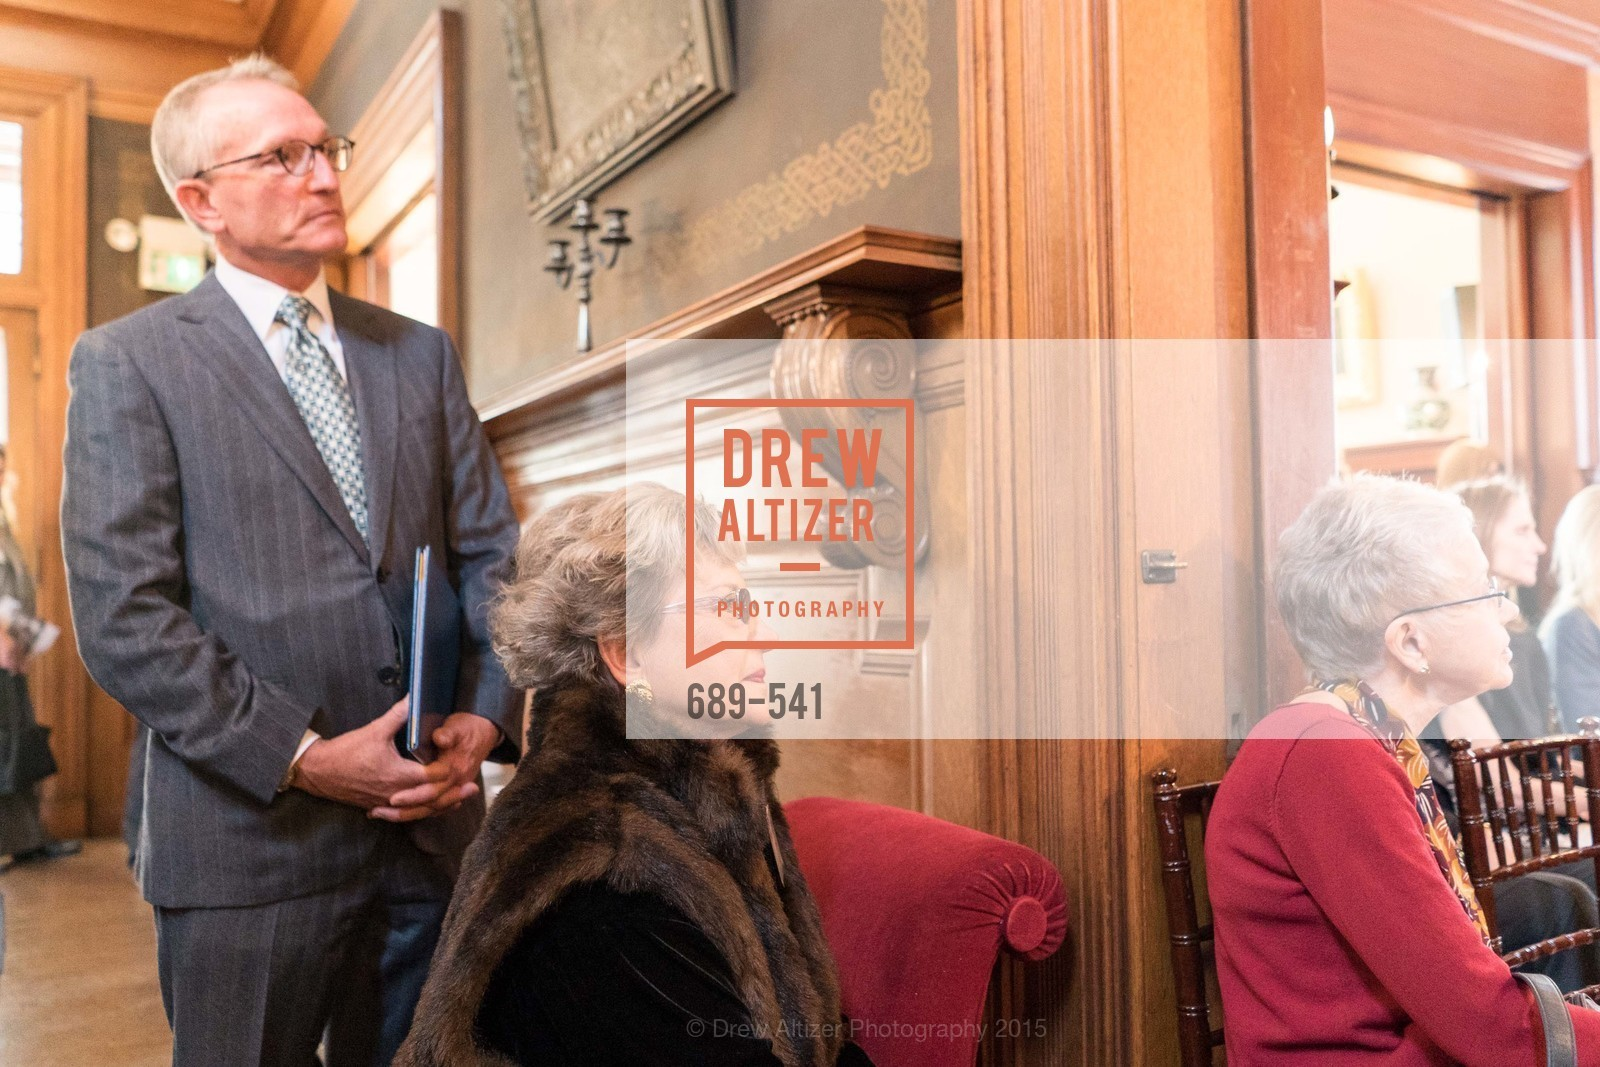 David Wessel, Carolyn O'Brien, Ceremony Inaugurating the Campaign for San Francisco Heritage & Haas-Lilienthal House, Haas-Lilienthal House. 2007 Franklin Street, November 18th, 2015